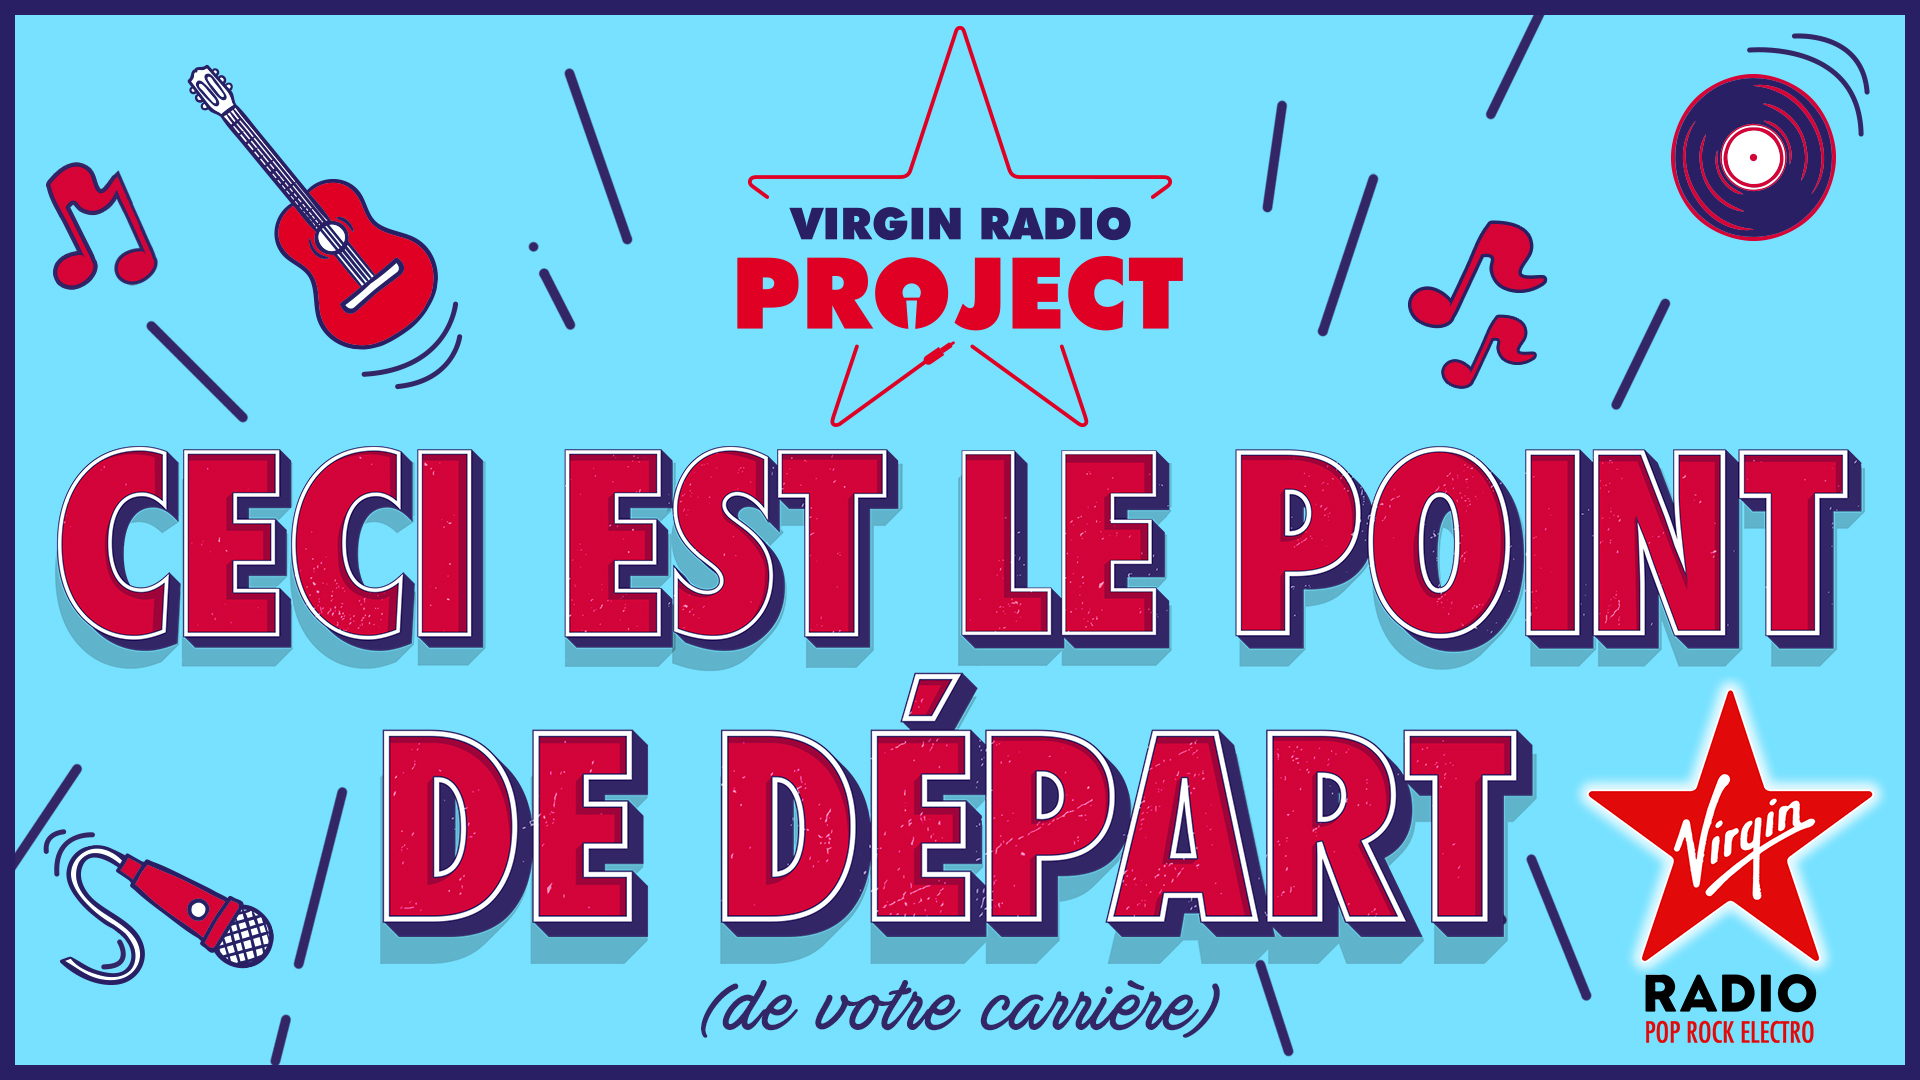 Virgin Radio lance Virgin Radio Project